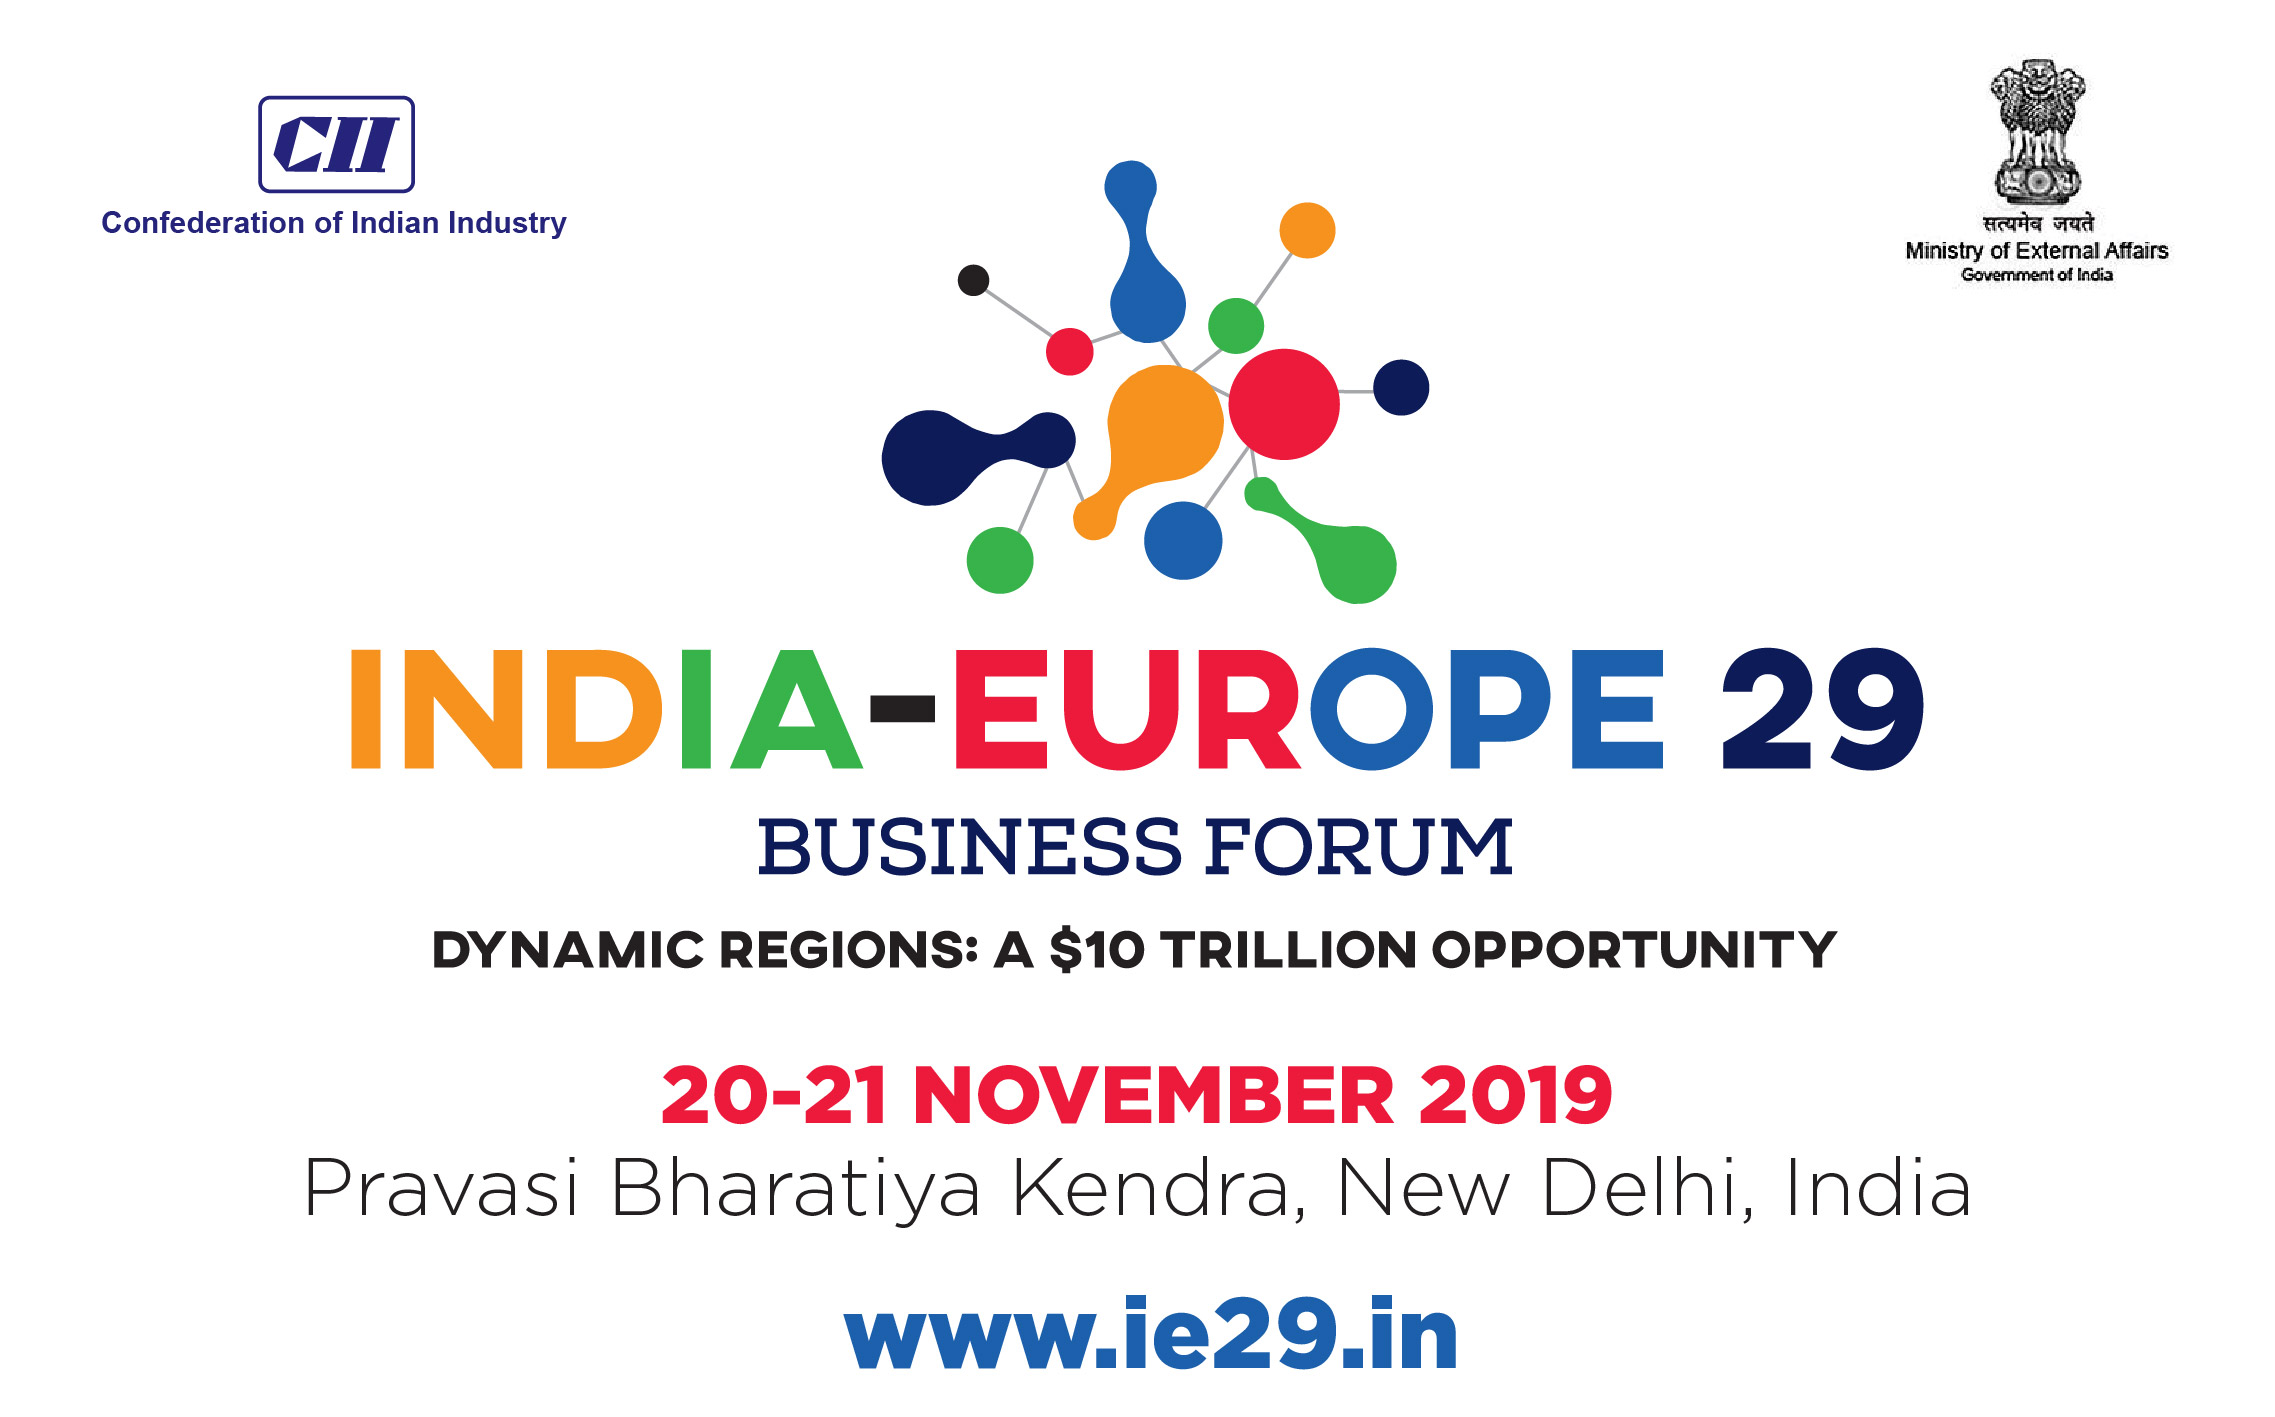 The 5th edition of the India-Europe 29 Business Forum (IE29BF), from 20th to 21st November 2019, New Delhi